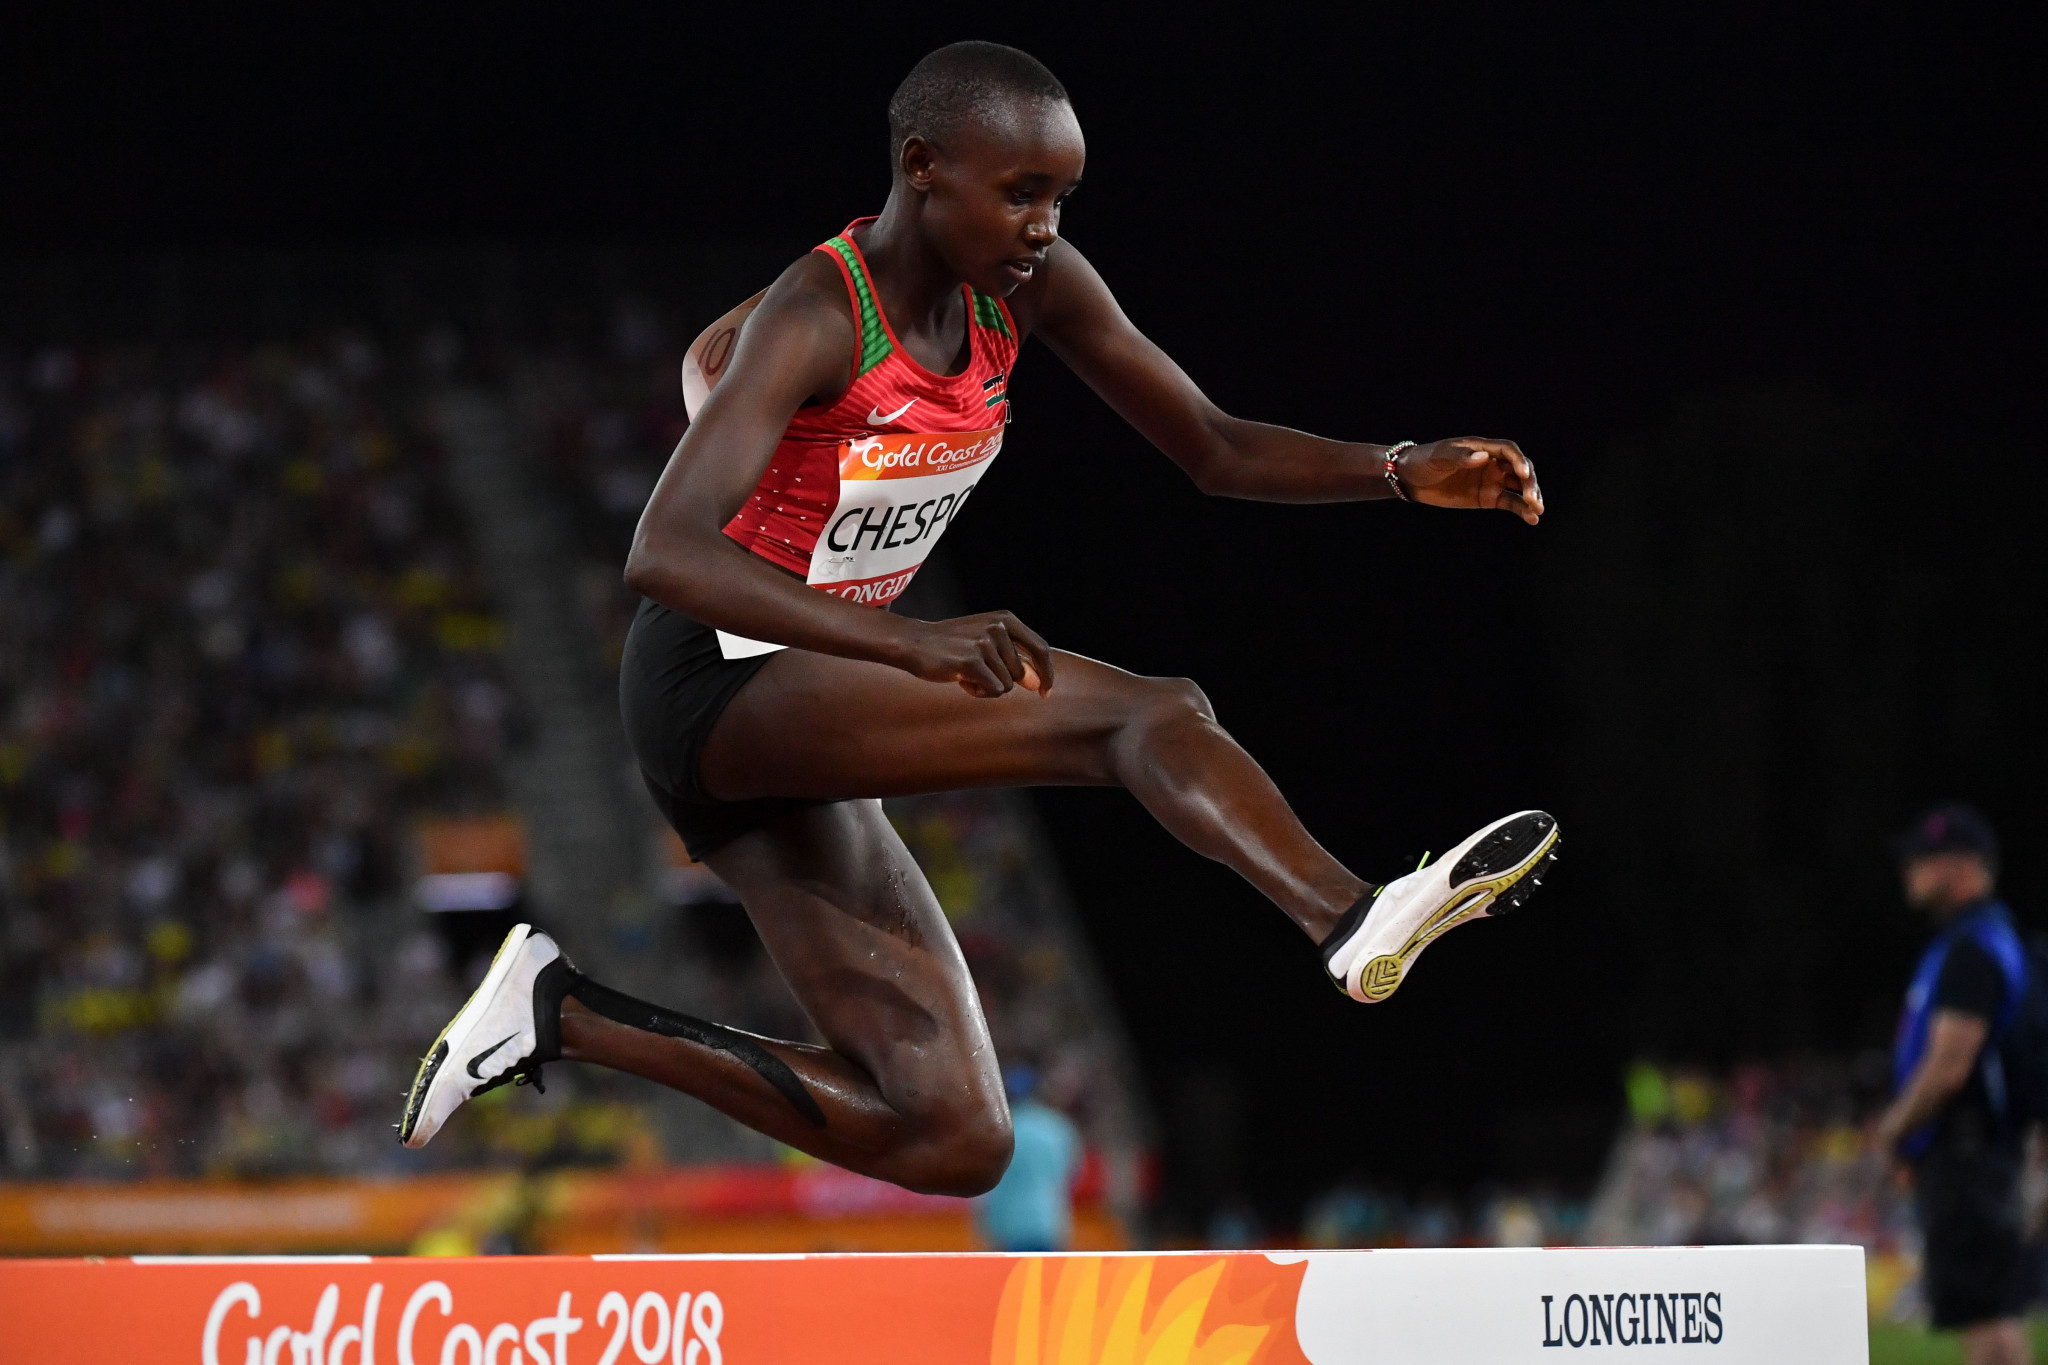 The performances of Celliphine Chespol, including winning a Commonwealth Games silver medal in the 3,000 metres steeplechase, saw her nominated for the female IAAF Rising Star Award @Getty Images